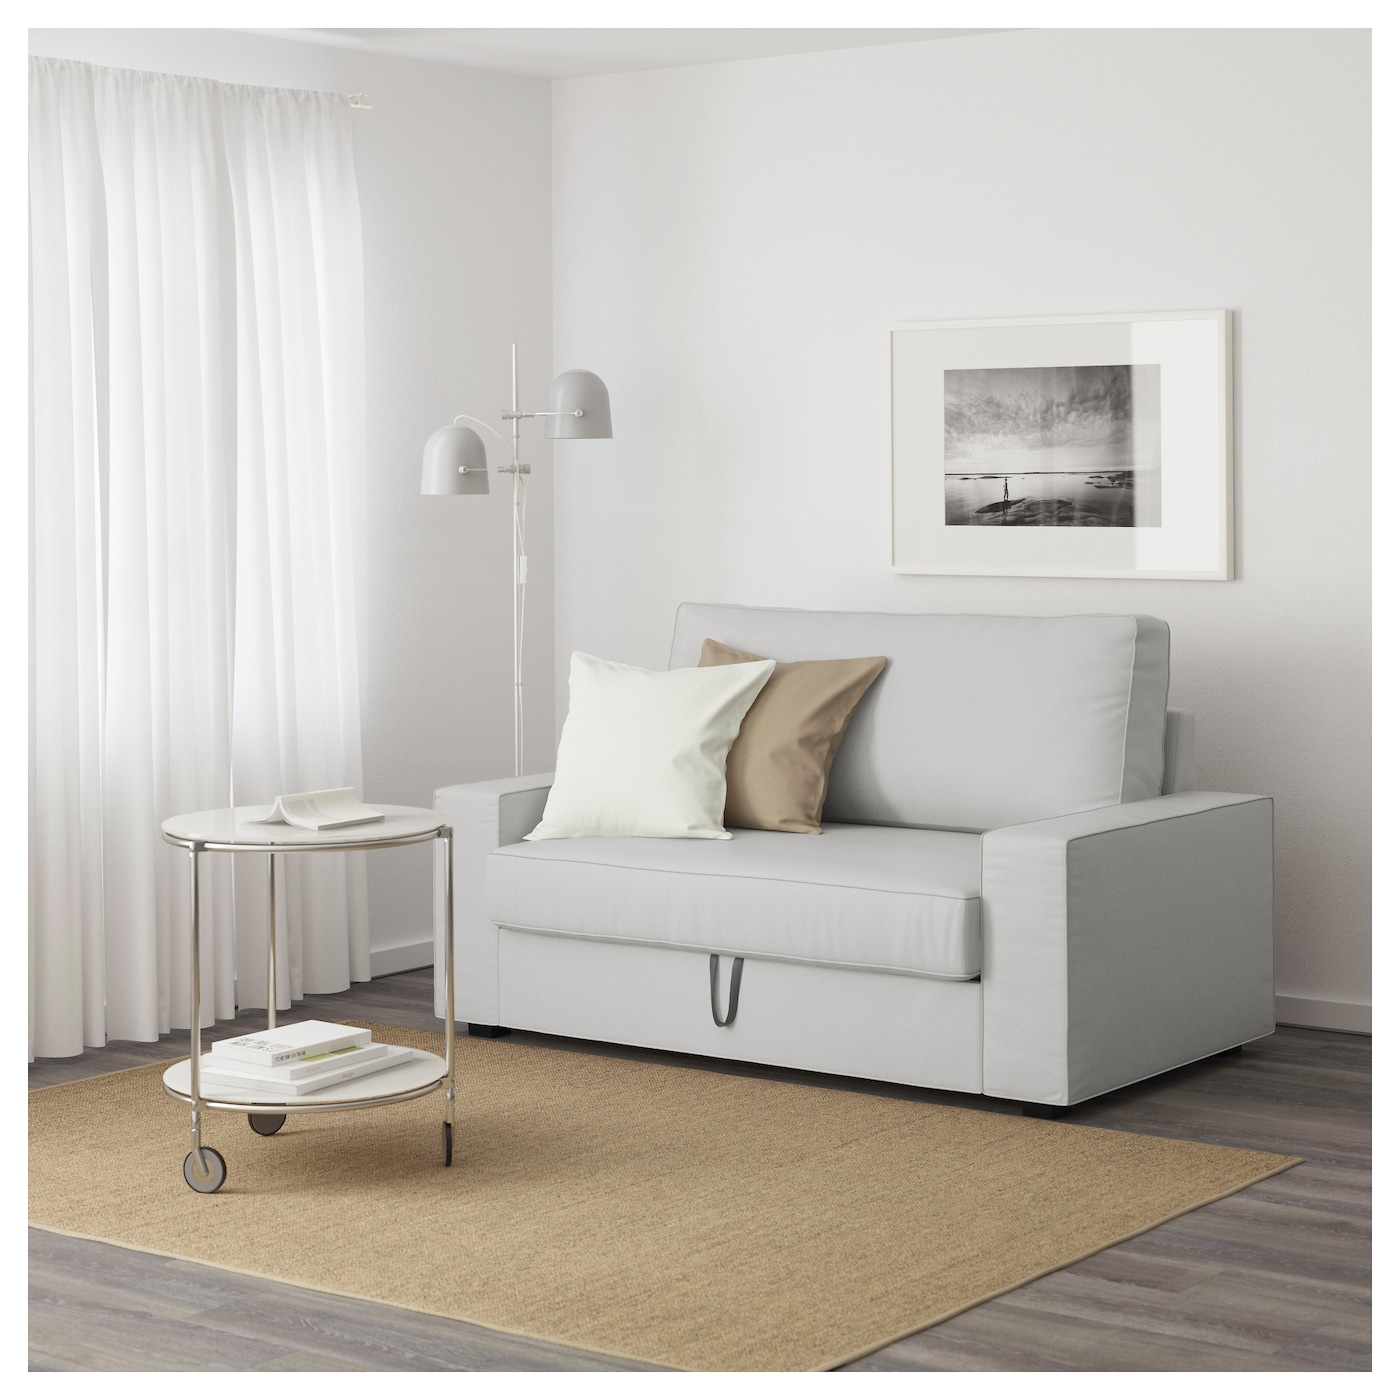 IKEA VILASUND two-seat sofa-bed